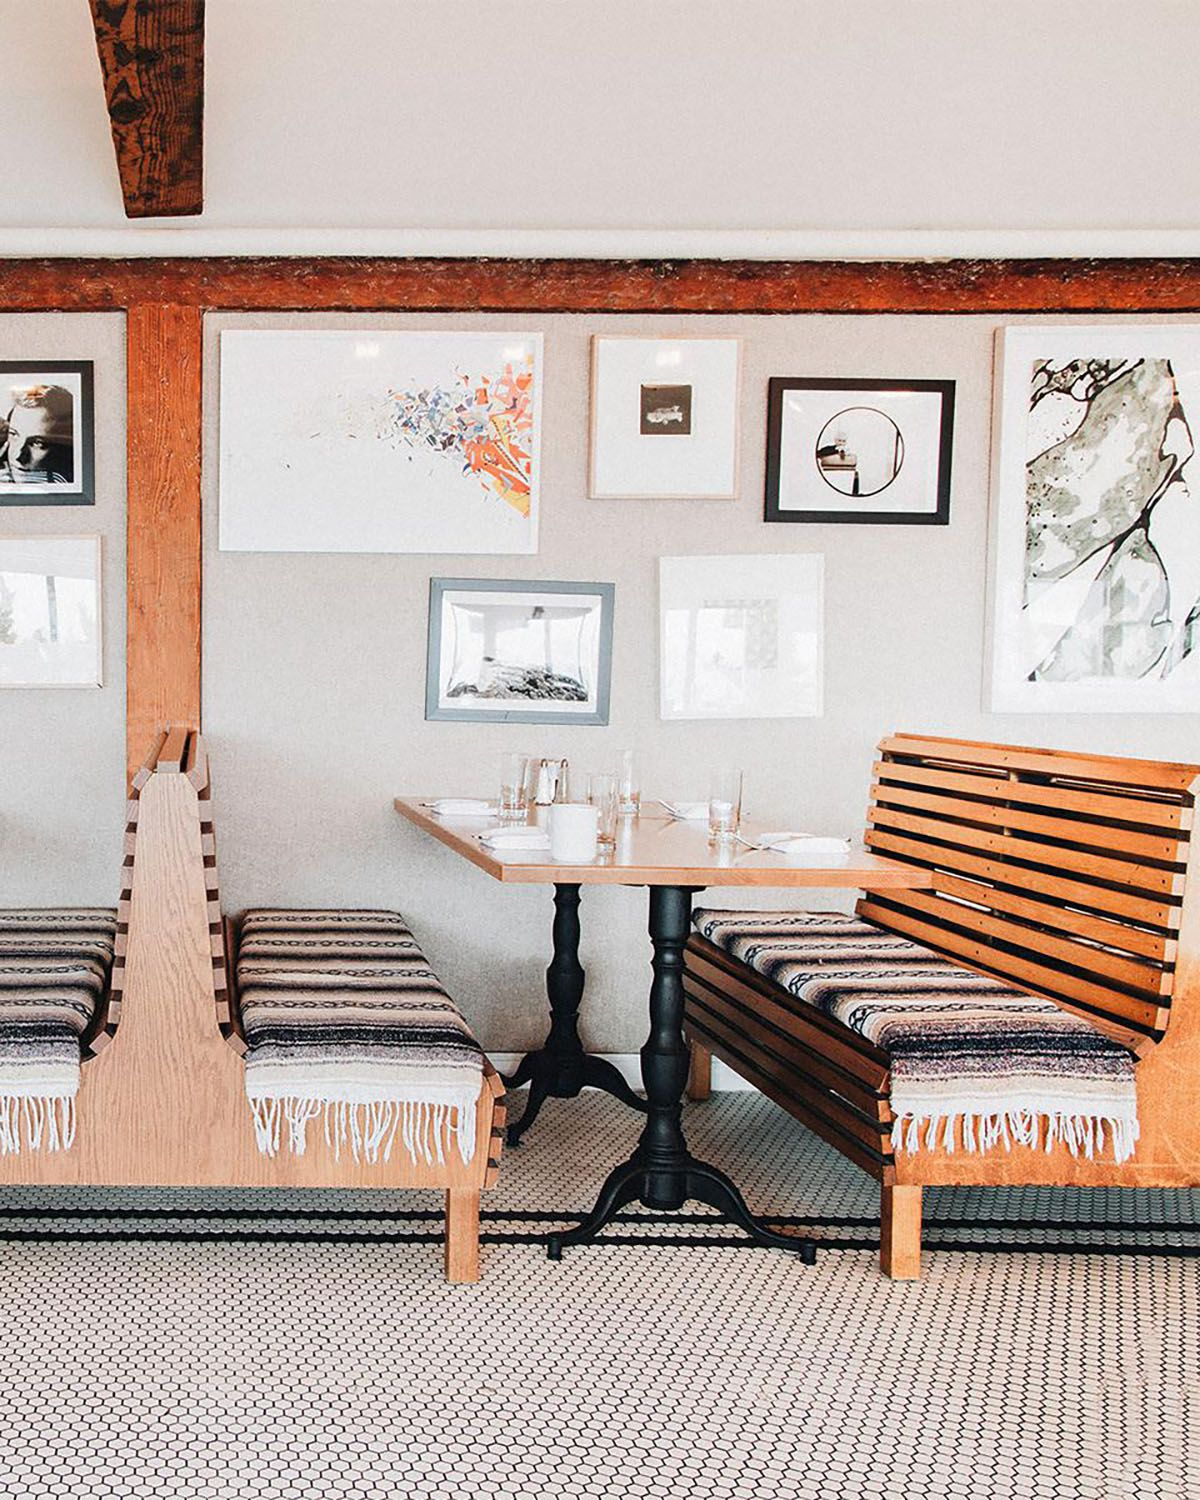 Wood benches and artwork inside of Tillie